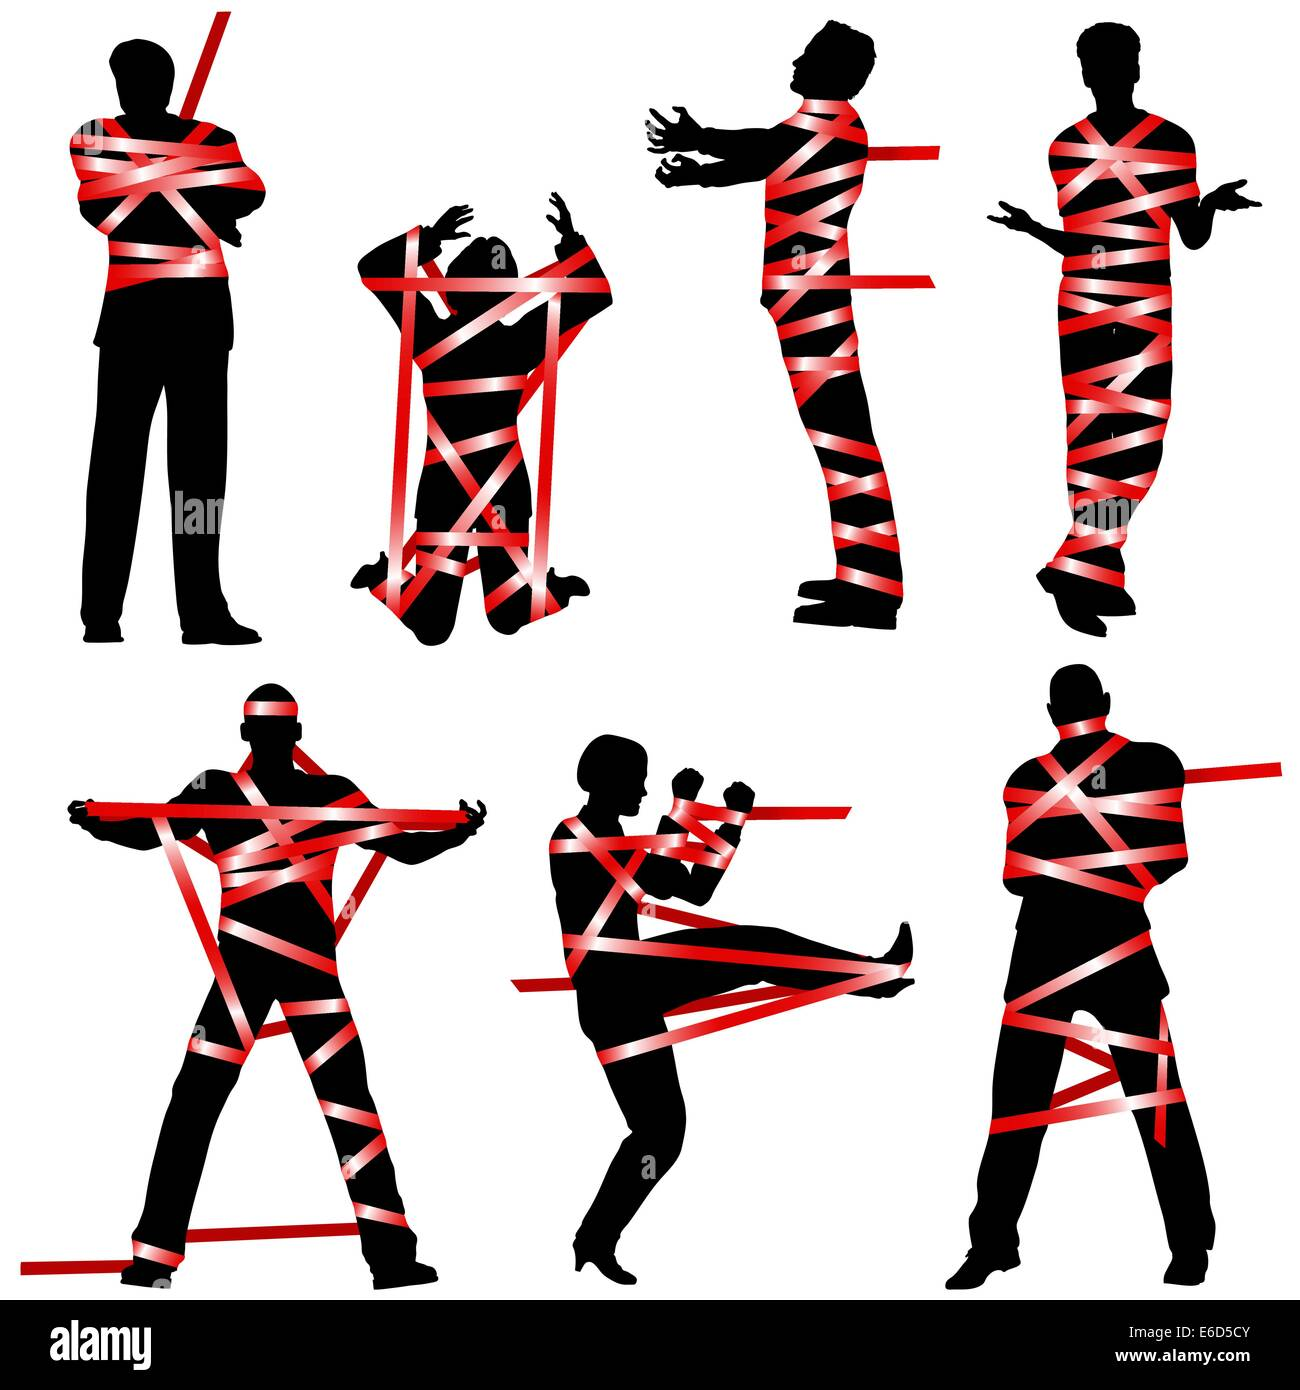 Set of editable vector silhouettes of people wrapped in red tape - Stock Vector